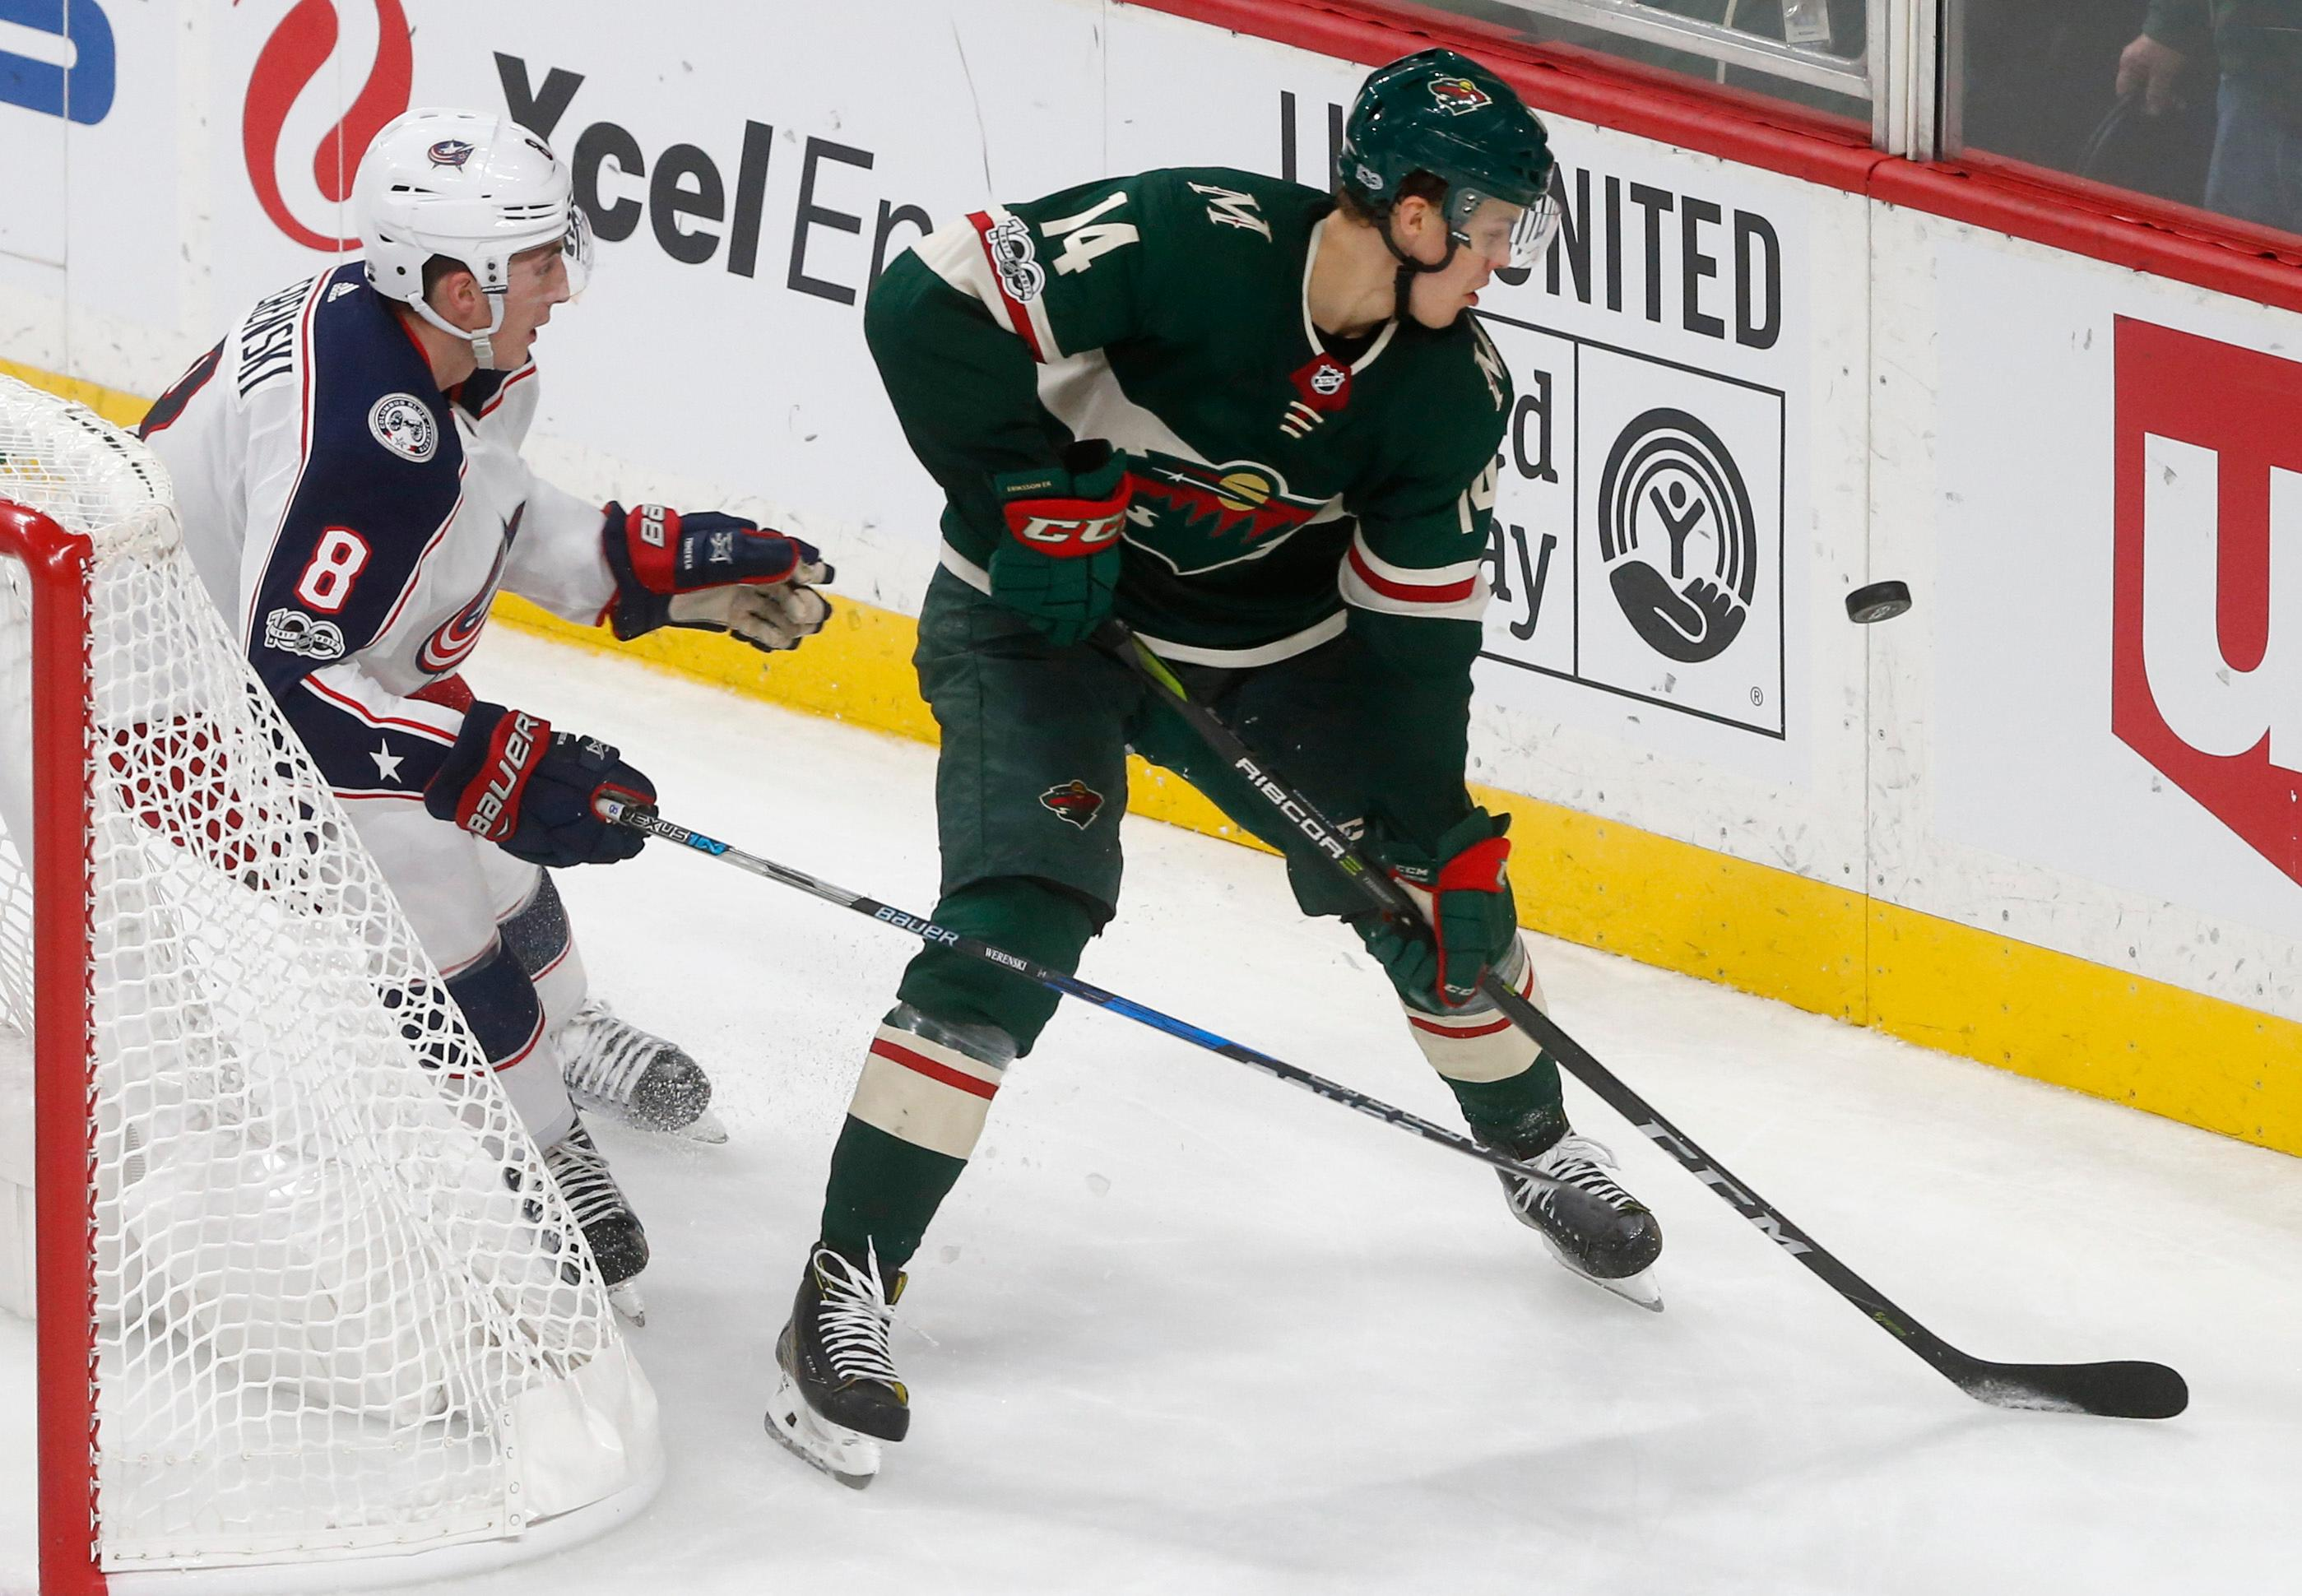 Columbus Blue Jackets' Zach Werenski, left, and Minnesota Wild's Joel Eriksson Ek of Sweden watch the puck bounce off the boards behind the net during the second period of an NHL hockey game Saturday, Oct. 14, 2017, in St. Paul, Minn. (AP Photo/Jim Mone)